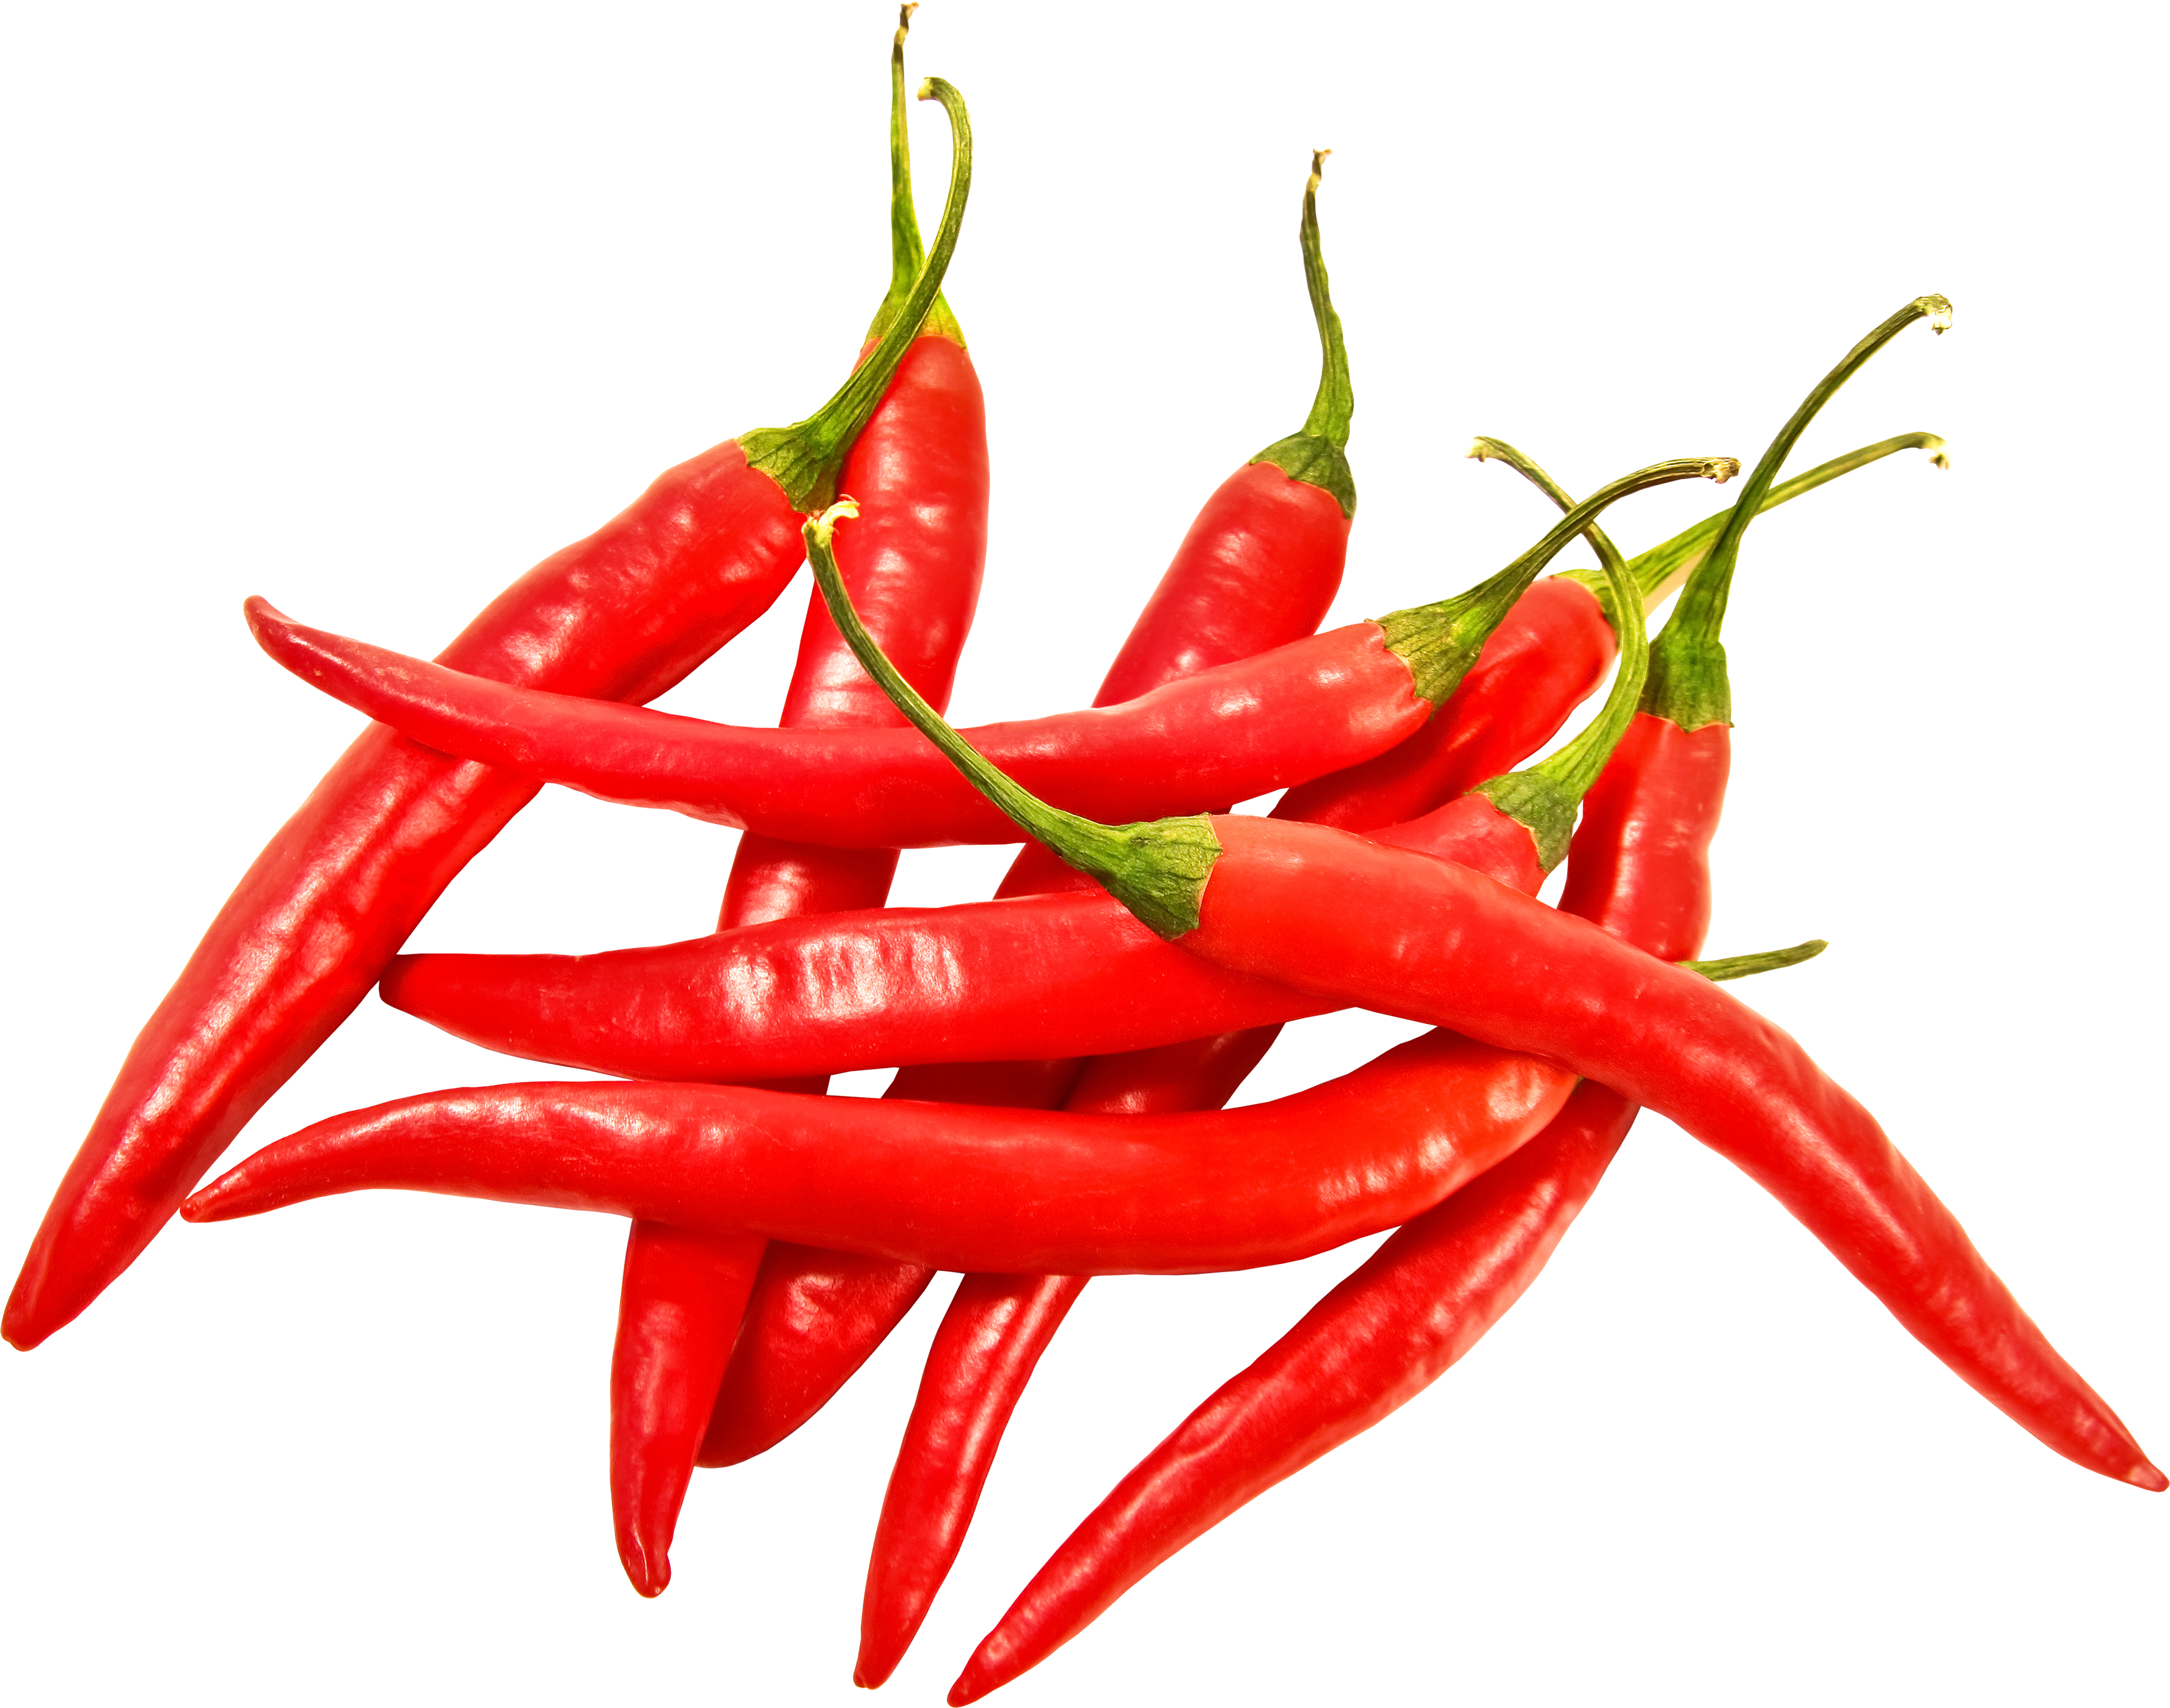 Red Pepper PNG Image.